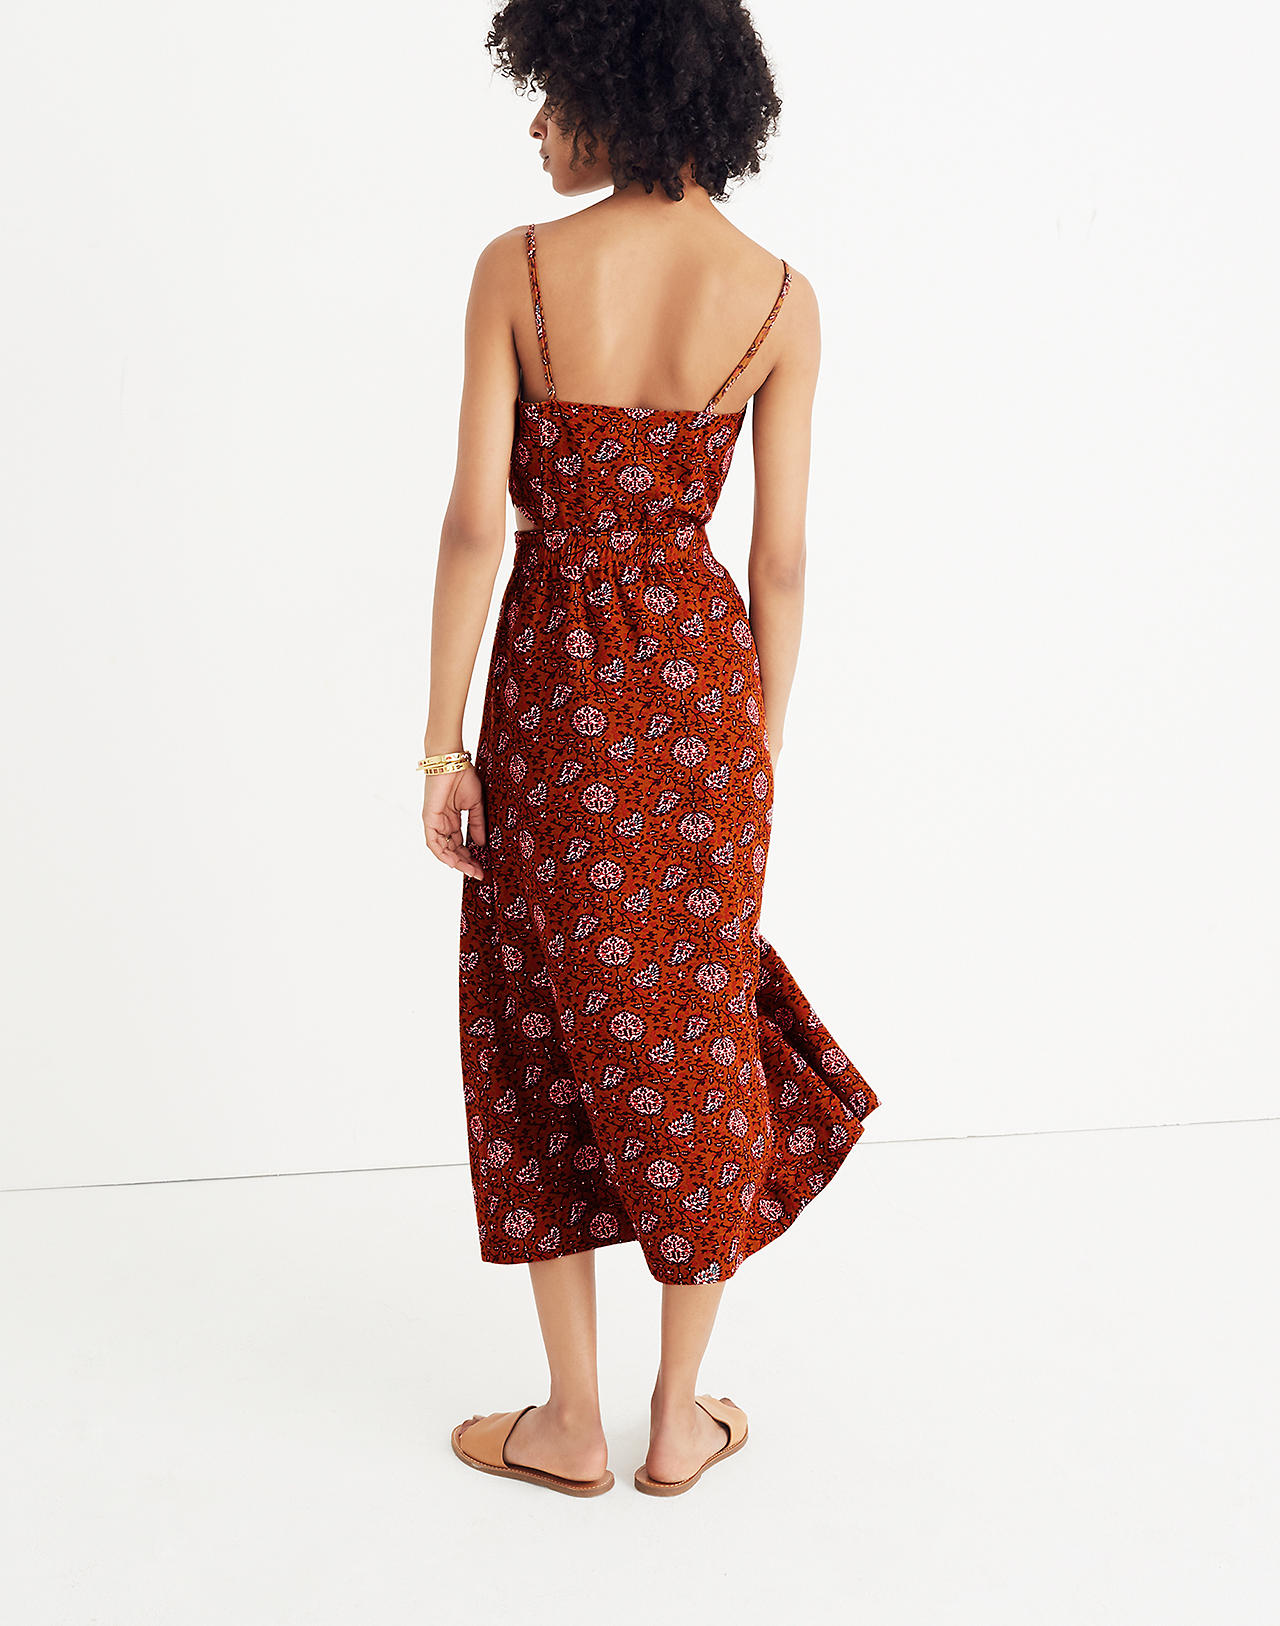 fe65ad144c8 Cutout Cami Midi Dress in Warm Paisley in provincial burnt sienna image 3